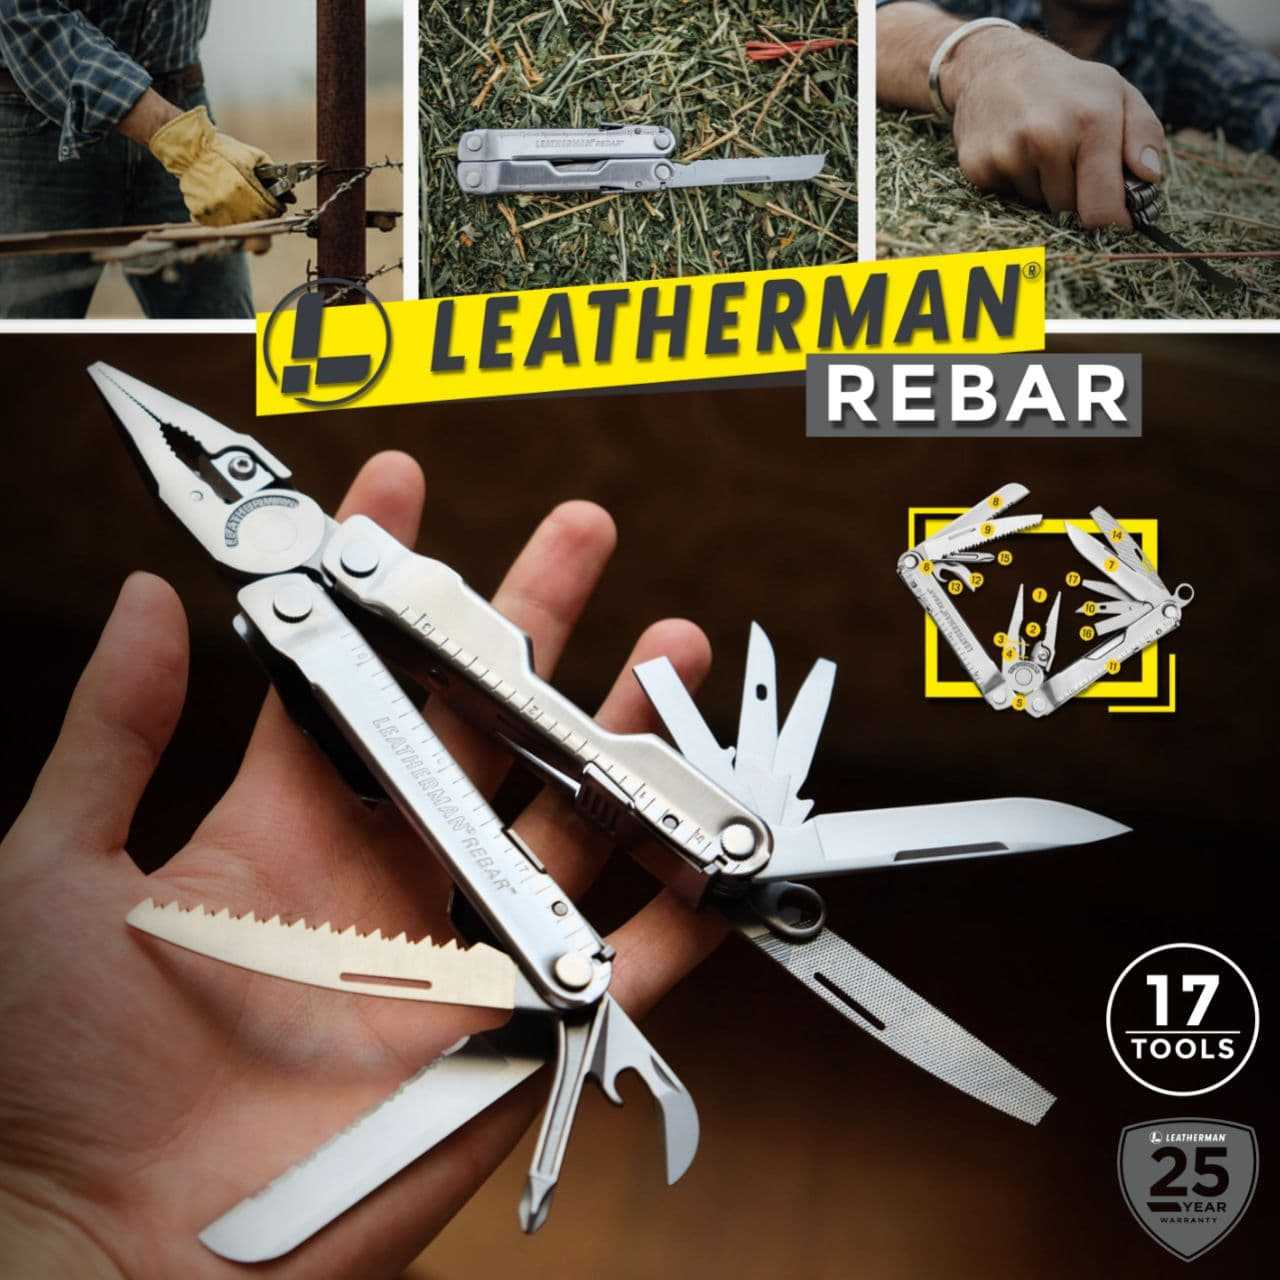 Leatherman Rebar 17-in-1 Multitools